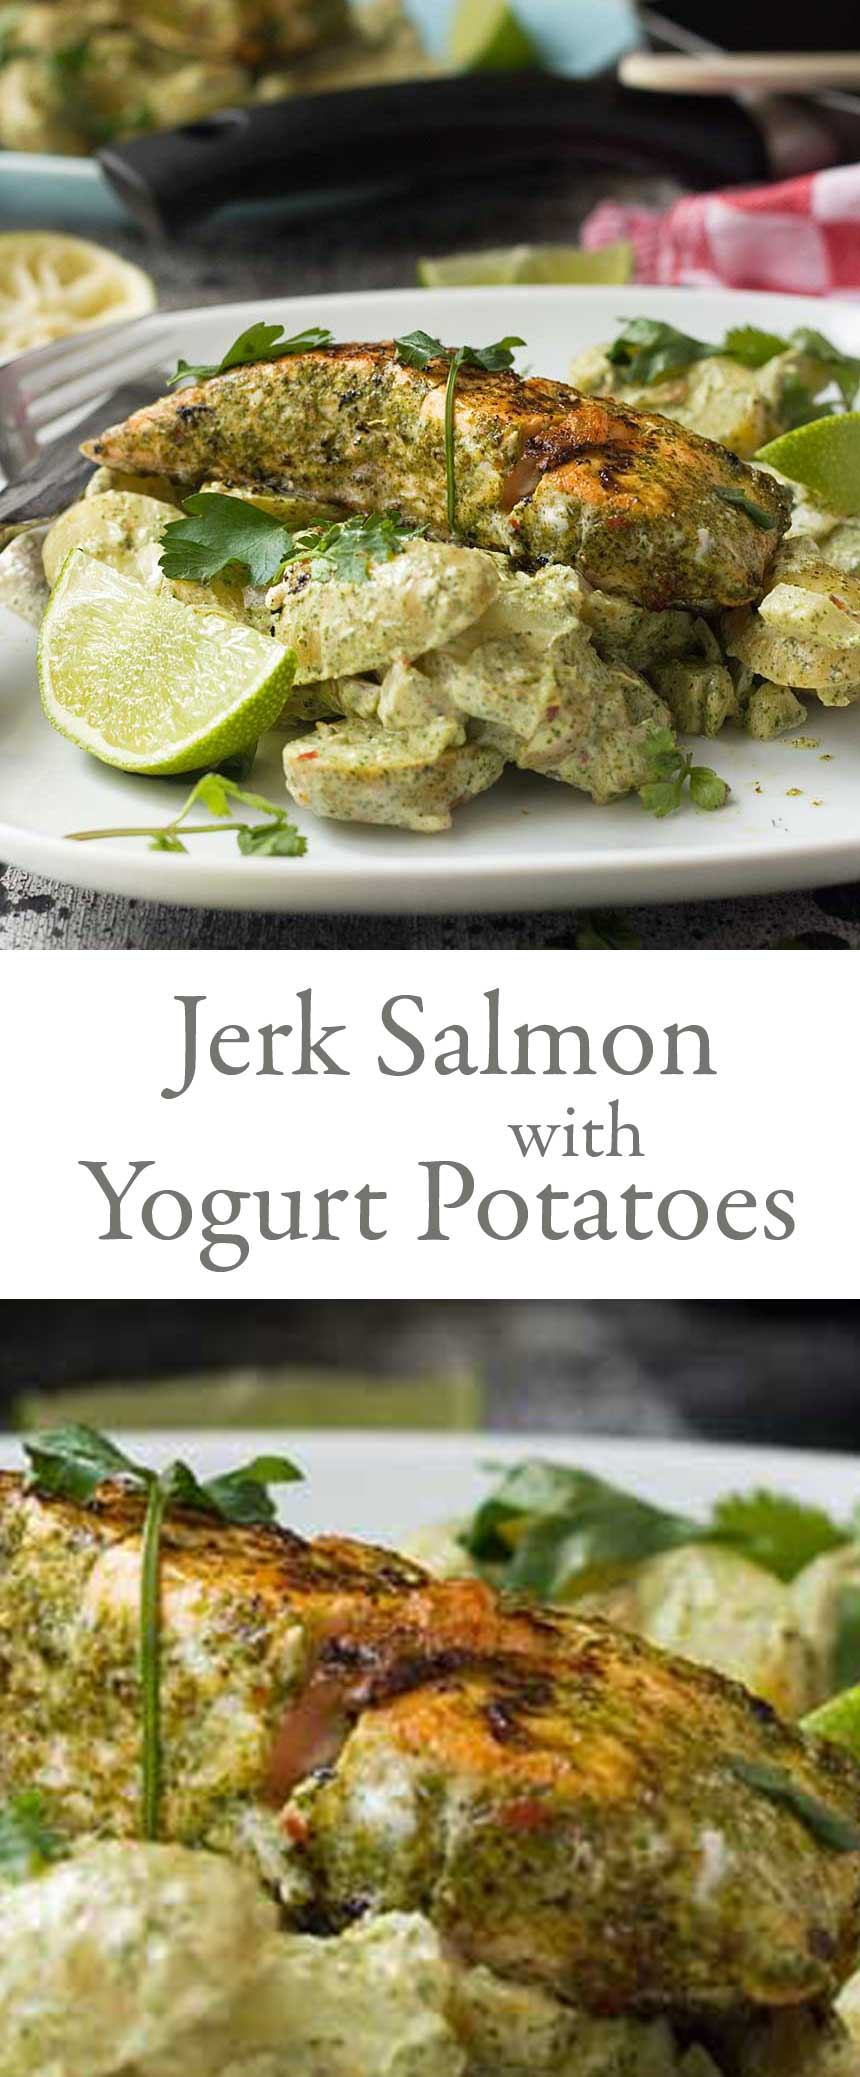 Jerk salmon with yogurt potatoes. A lovely new way to serve salmon - and it's naturally gluten free.